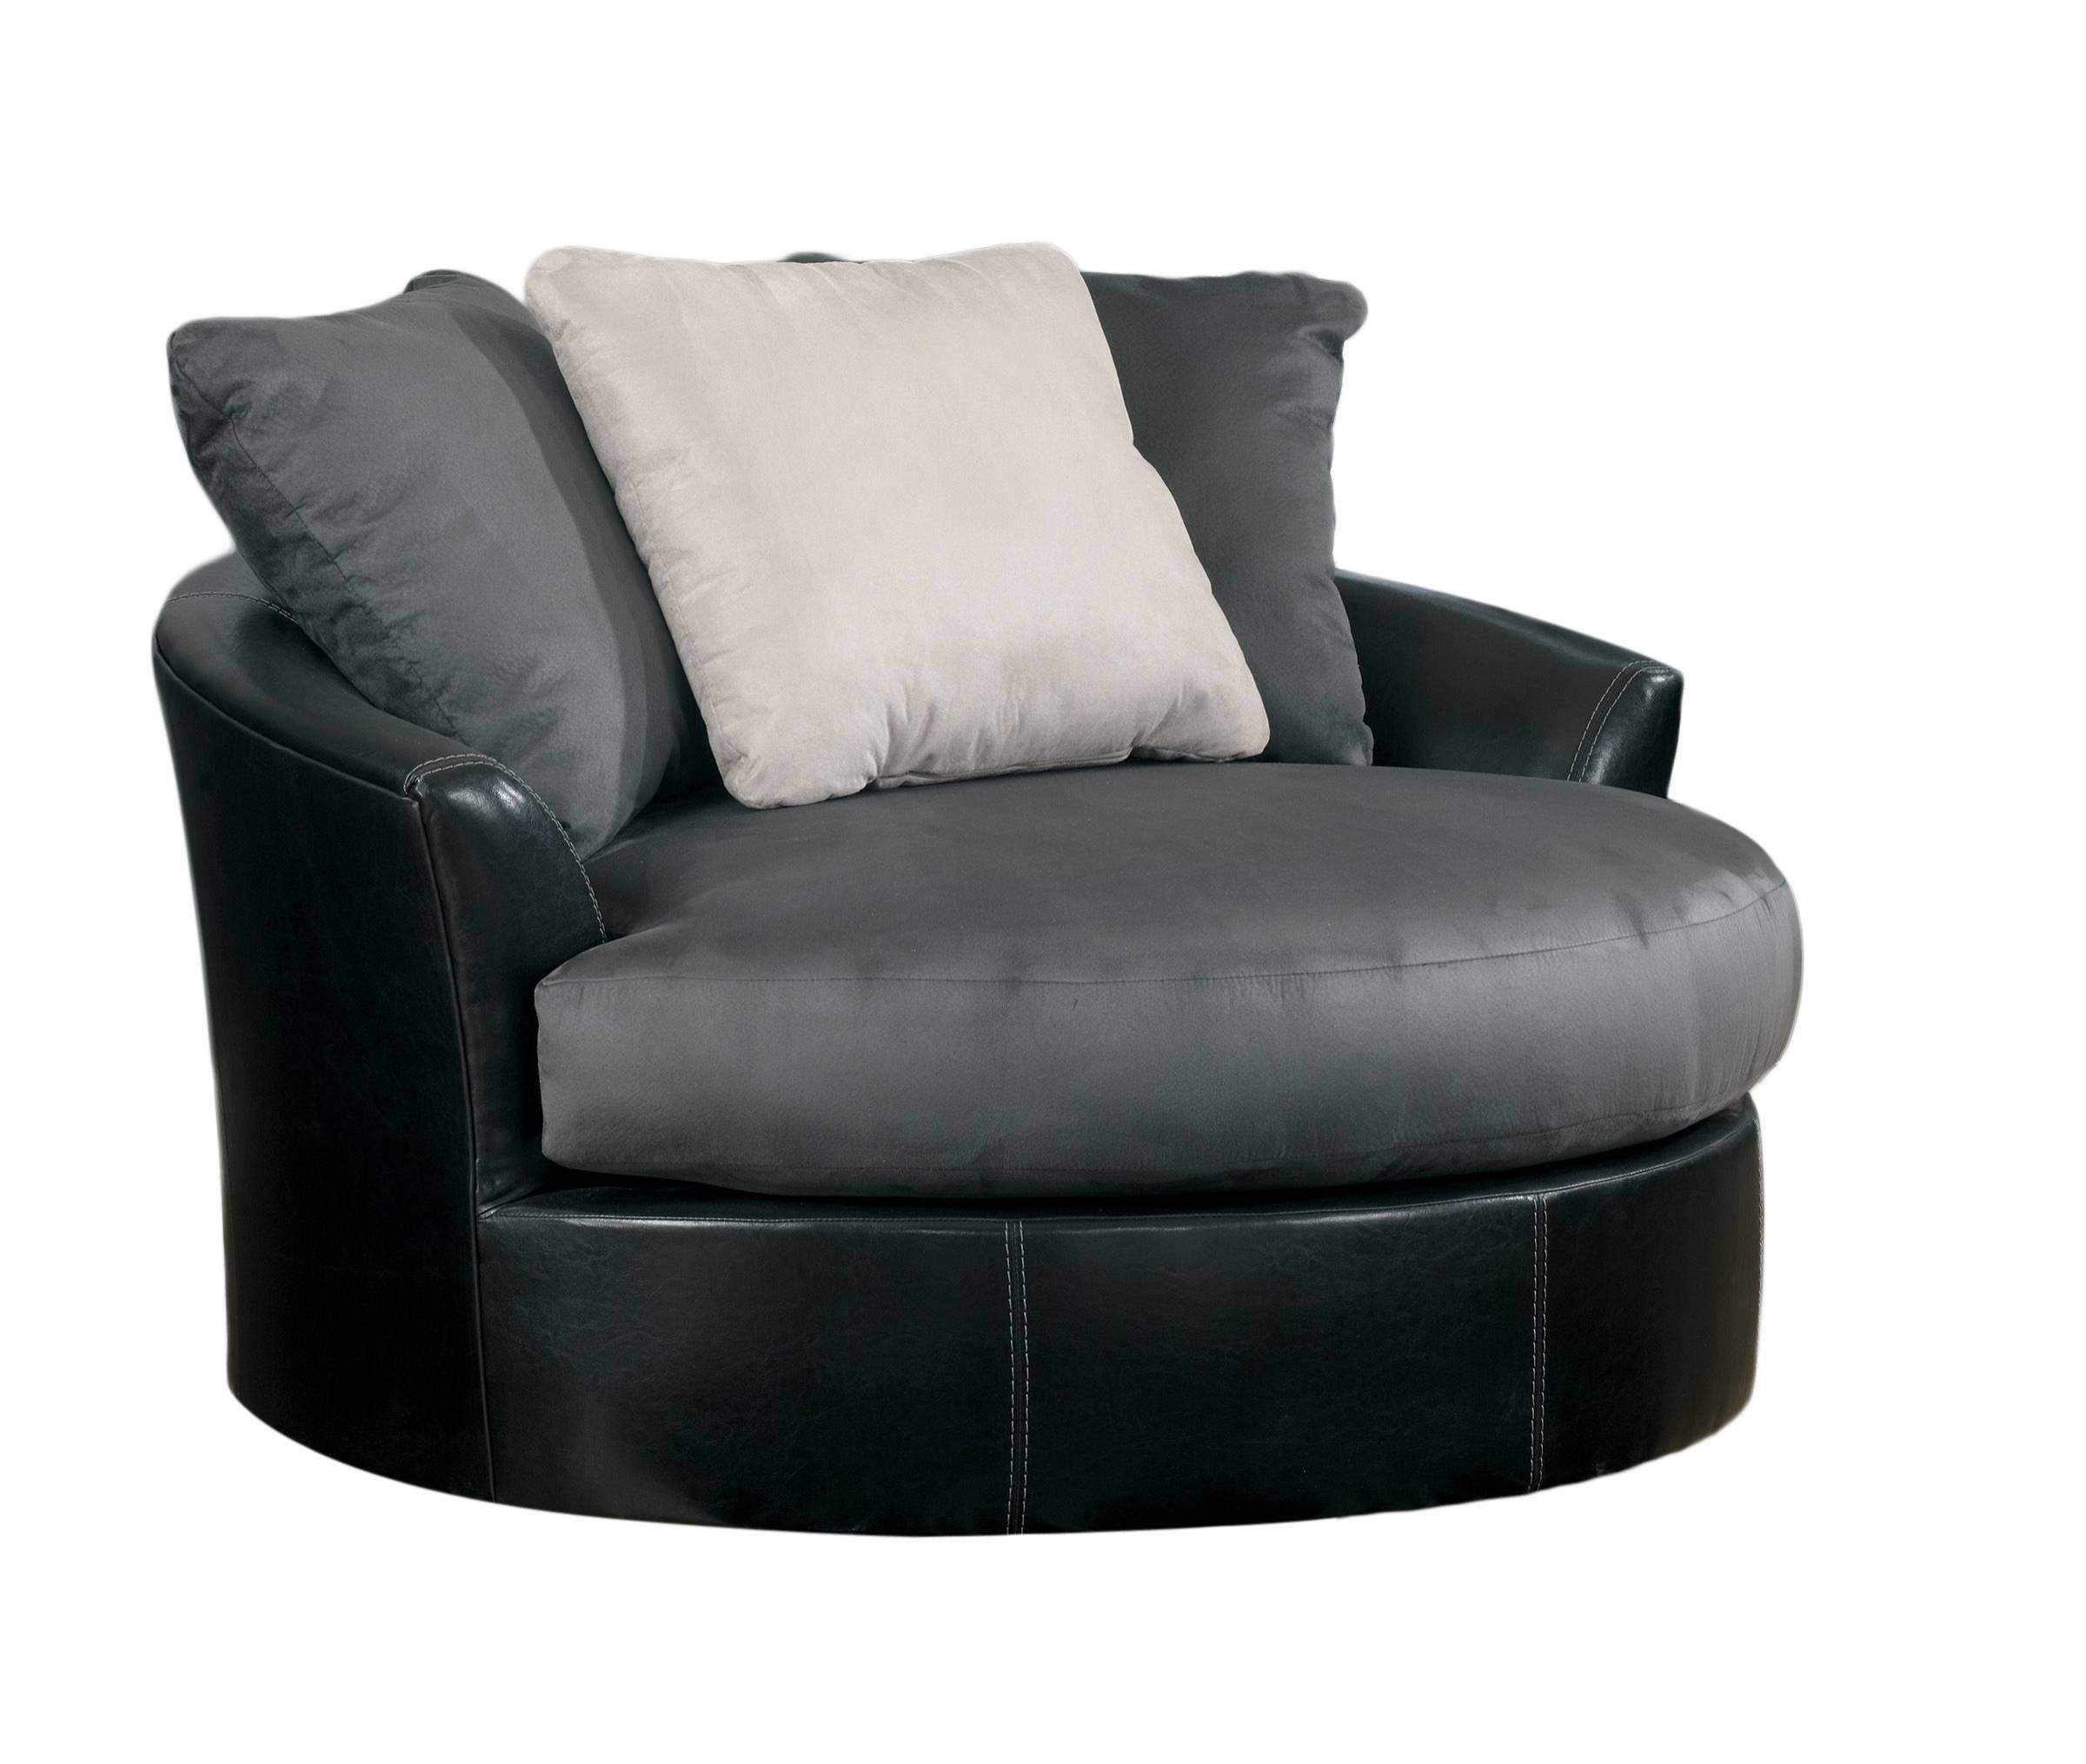 Round Sofa Chair Tire To Round Sofa Chair Round Sofa Chairsingle